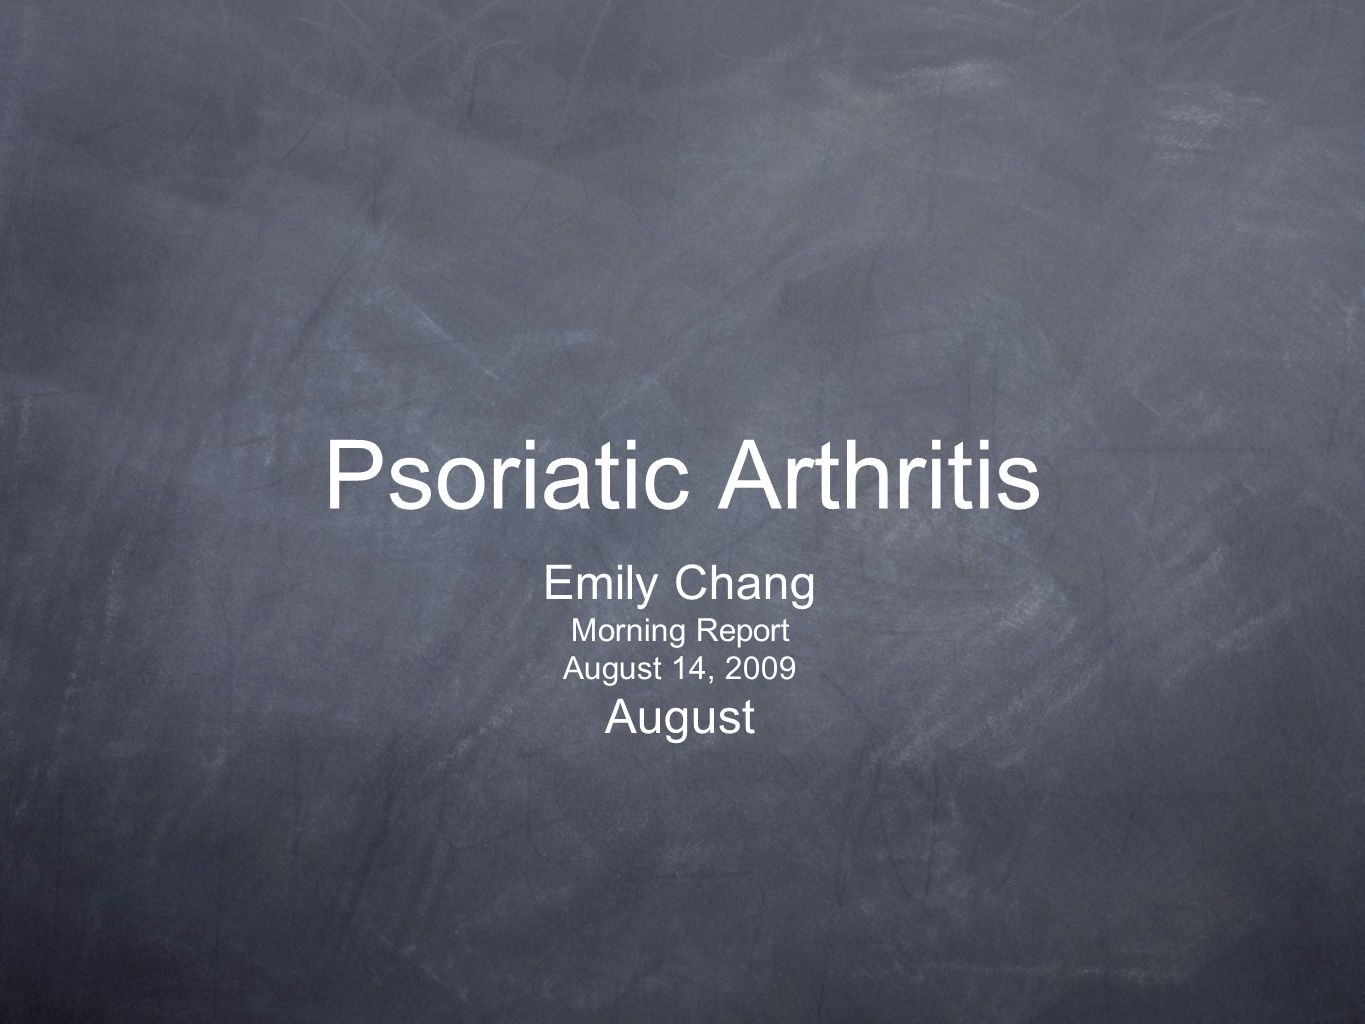 Definition Inflammatory arthritis associated with psoriasis Usually seronegative for Rheumatoid Factor Classified with HLA-B27-associated spondyloarthropathies